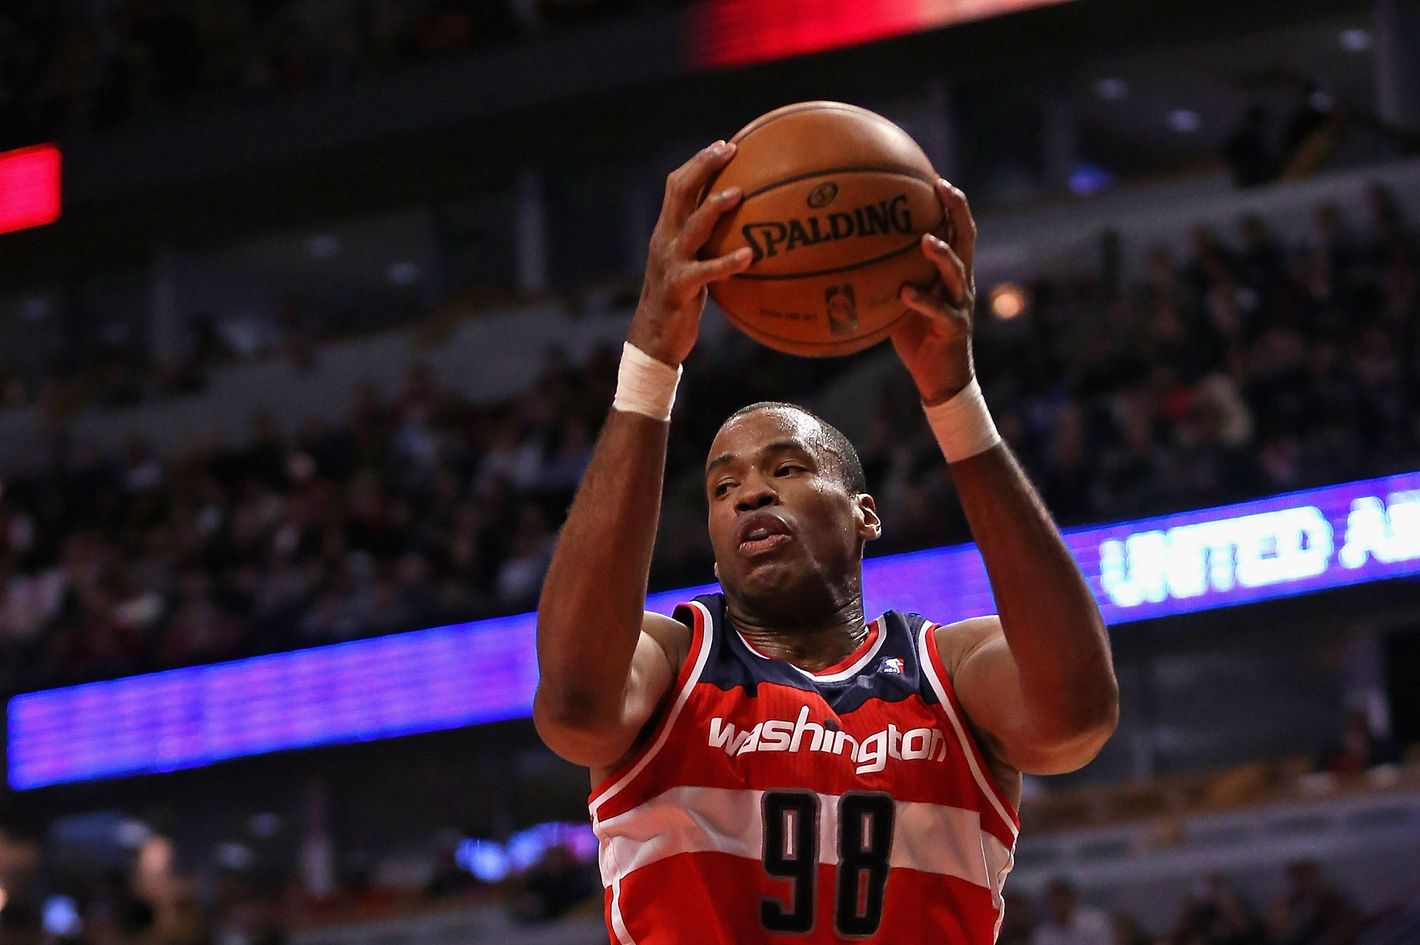 Jason Collins #98 of the Washington Wizards rebounds against the Chicago Bulls at the United Center on April 17, 2013 in Chicago, Illinois. The Bulls defeated the Wizards 95-92.